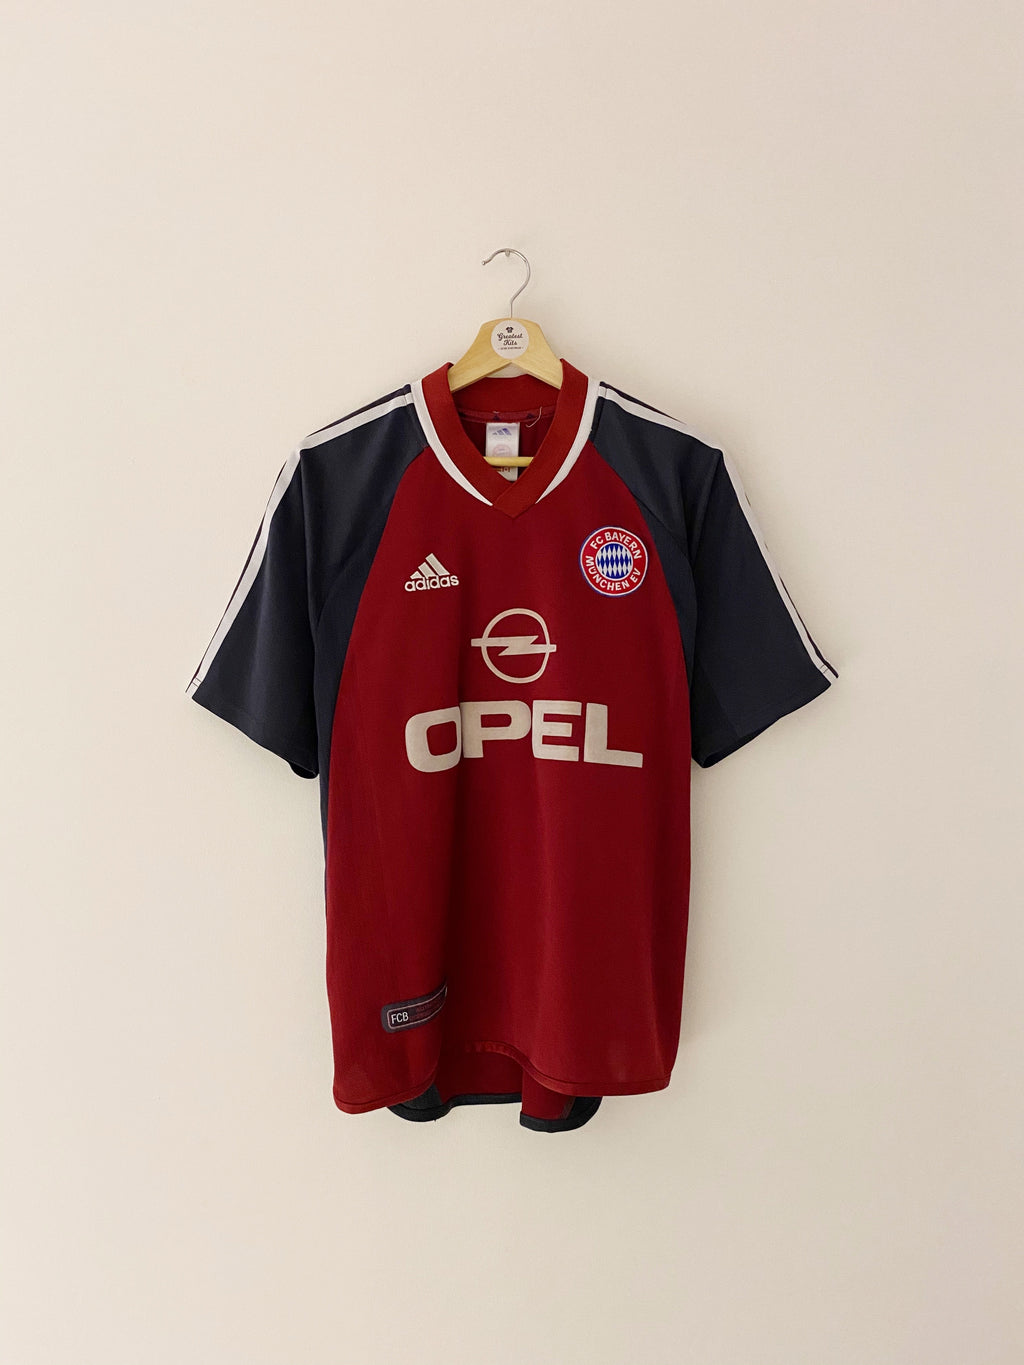 2001/02 Bayern Munich Home Shirt (S) 7.5/10